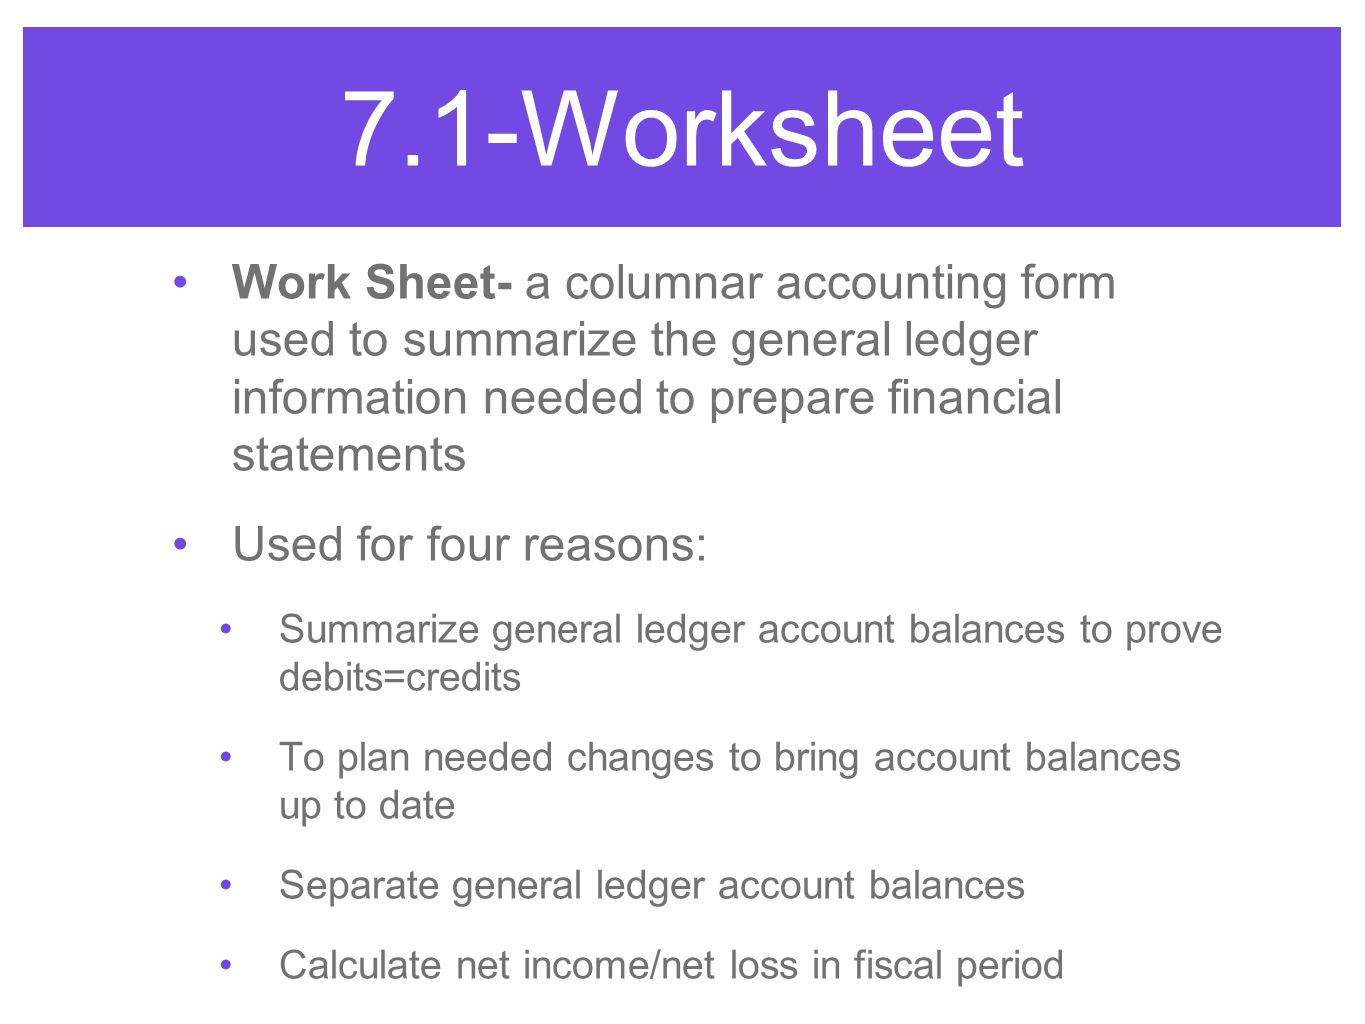 Worksheet for a Service Business - ppt video online download